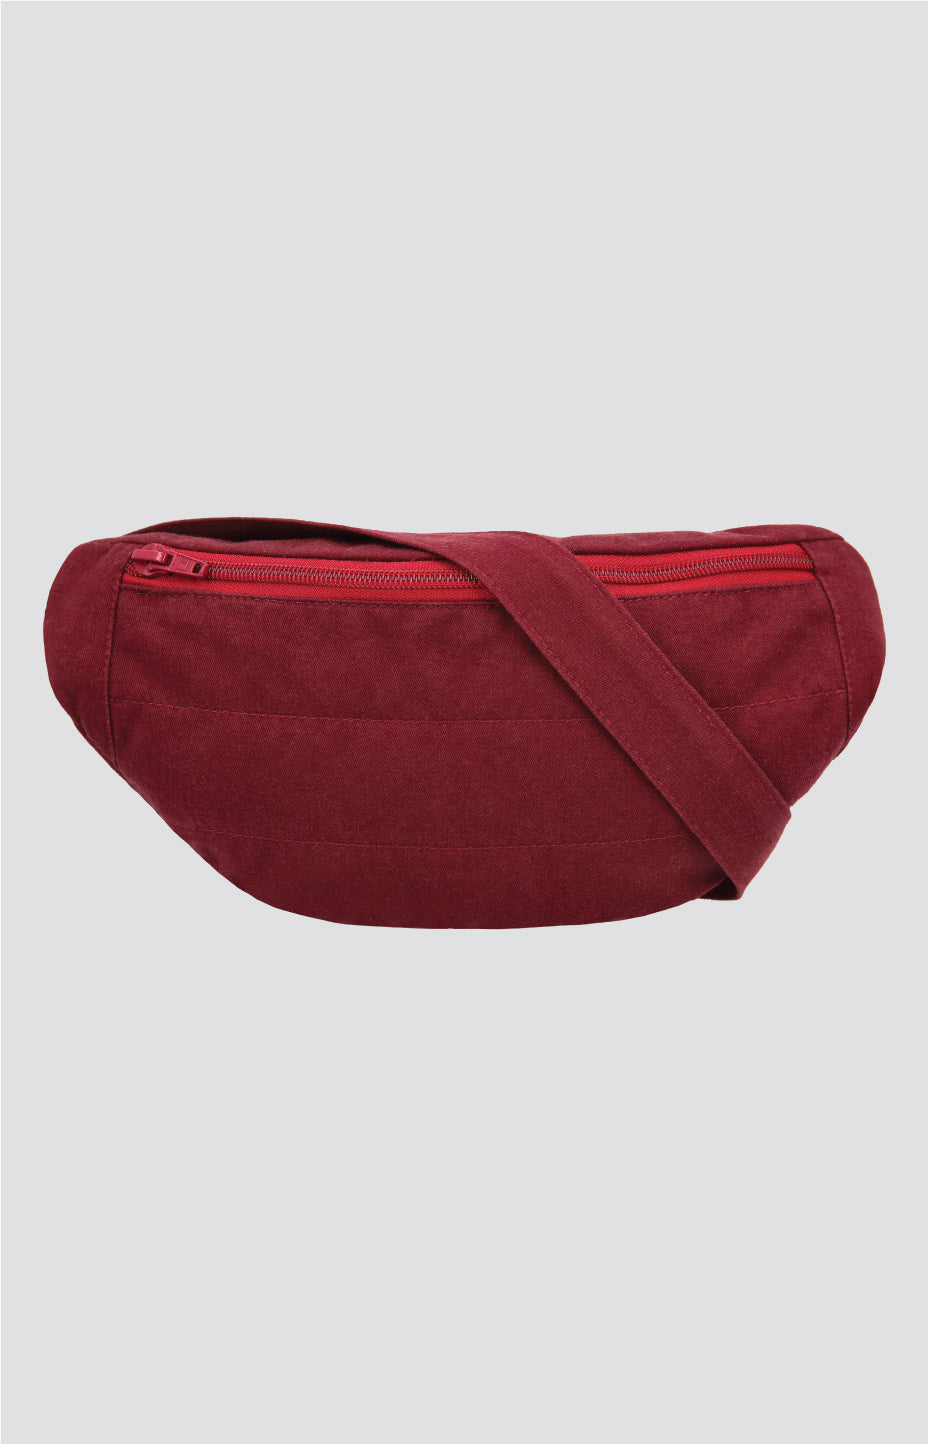 Ring belt bag cabernet red